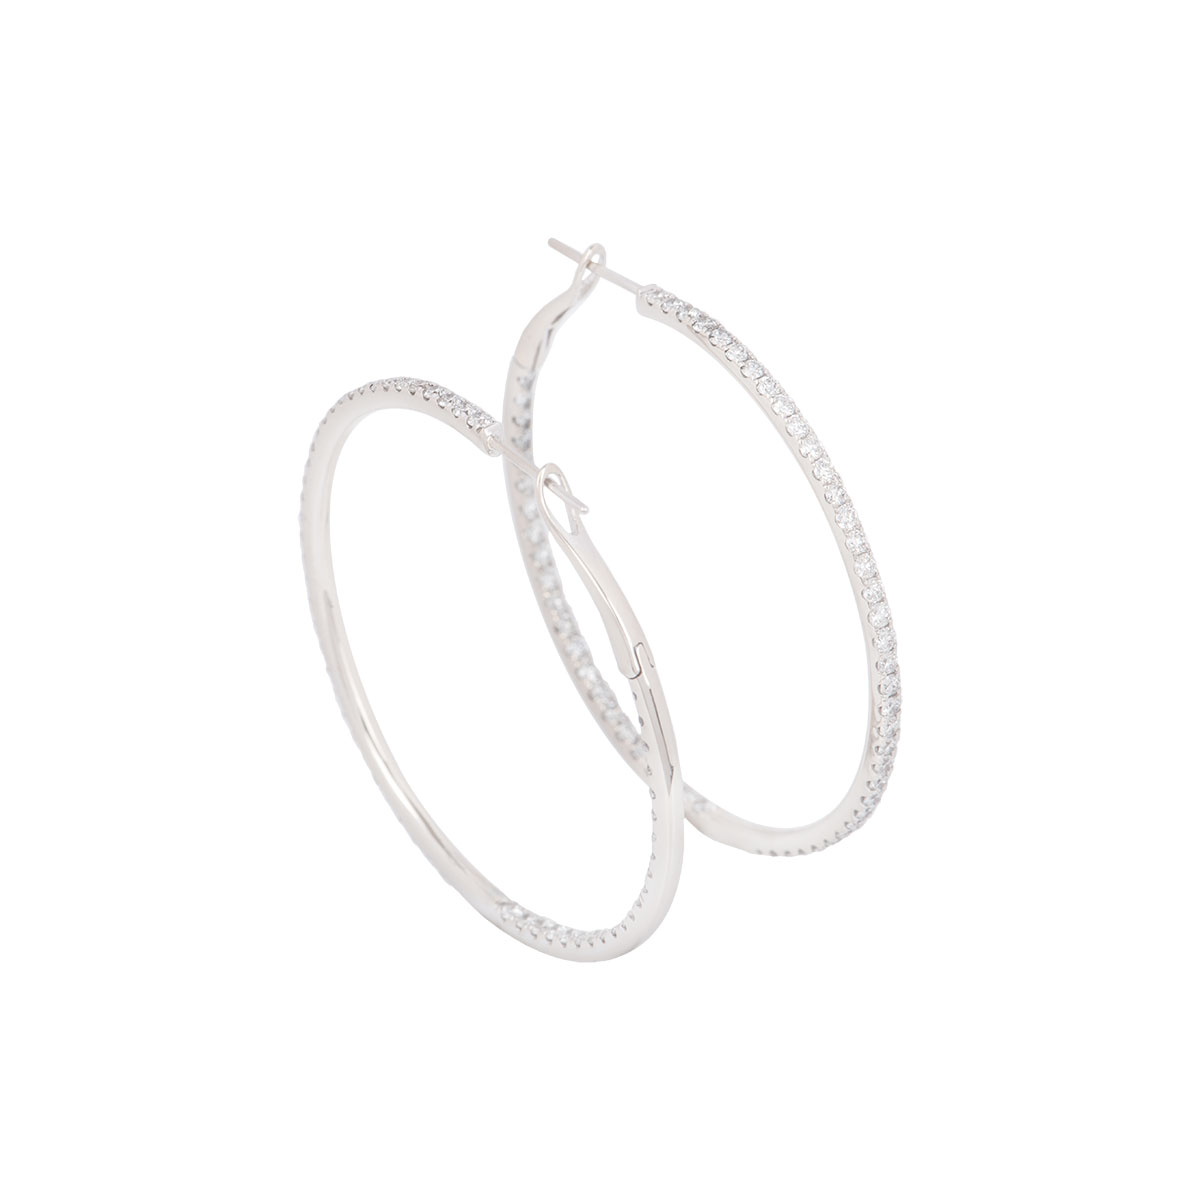 White Gold Diamond Hoop Earrings 2.55ct G/H VS